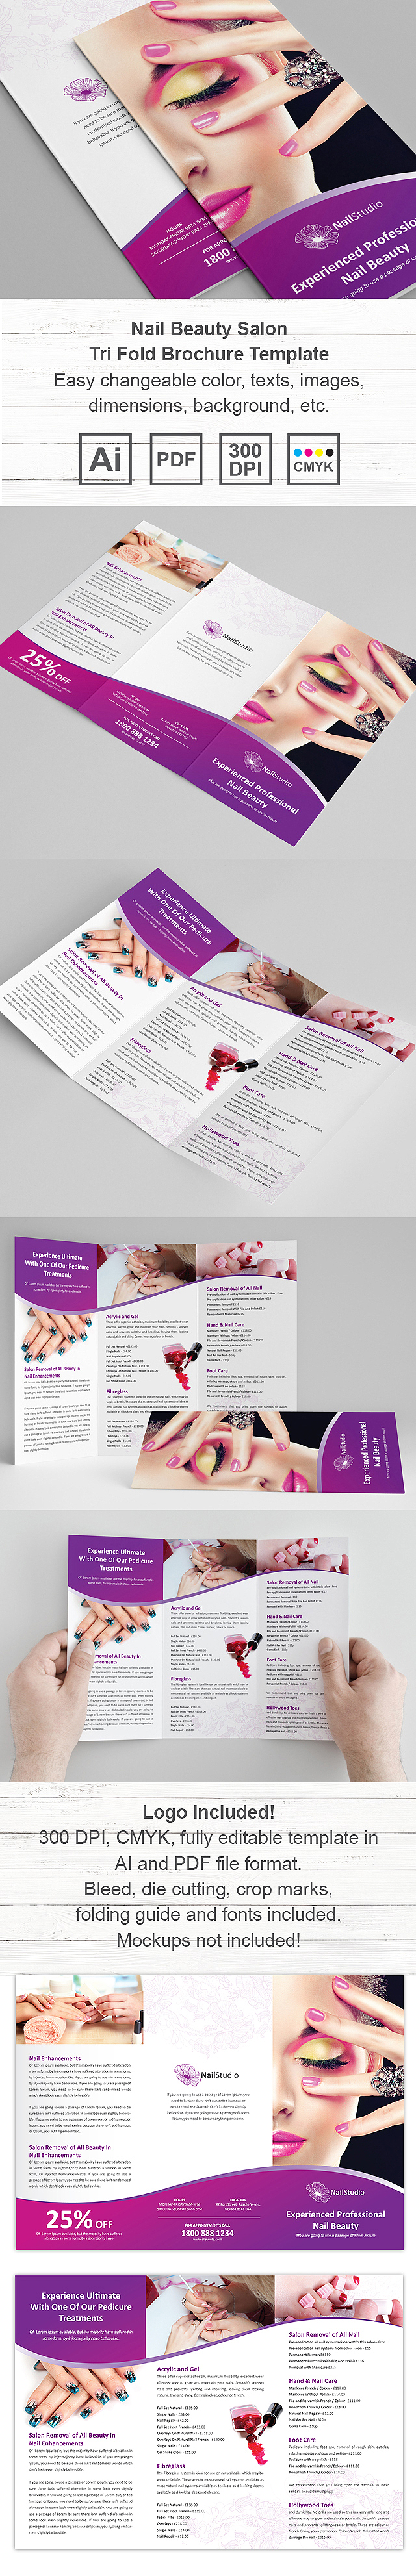 Salon Brochure Creactive Hari Salon Brochure  Salon Brochure